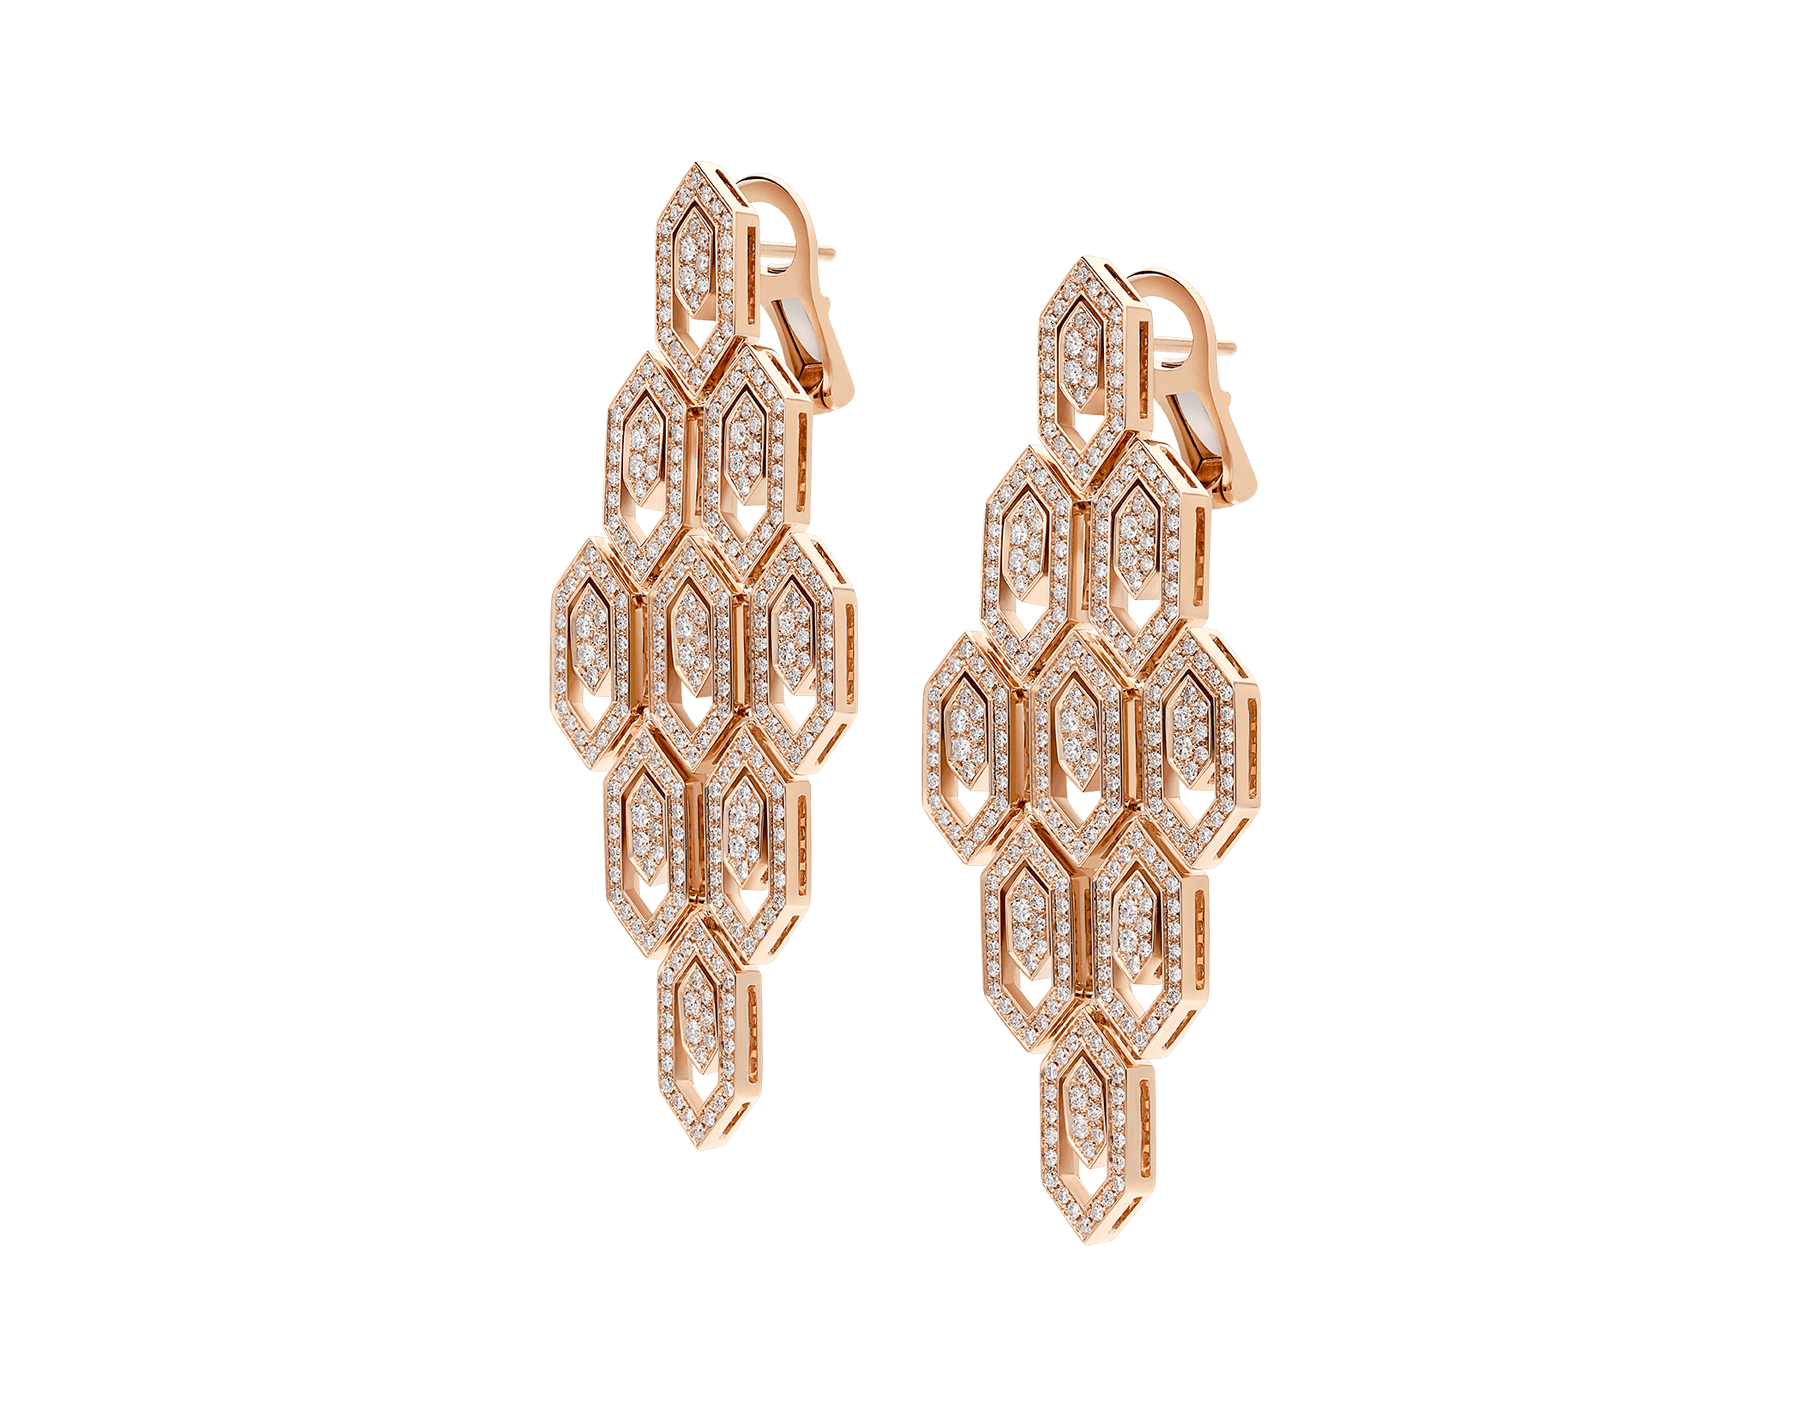 Serpenti 18 kt rose gold earrings set with pavé diamonds (2.18 ct) 356507 image 2